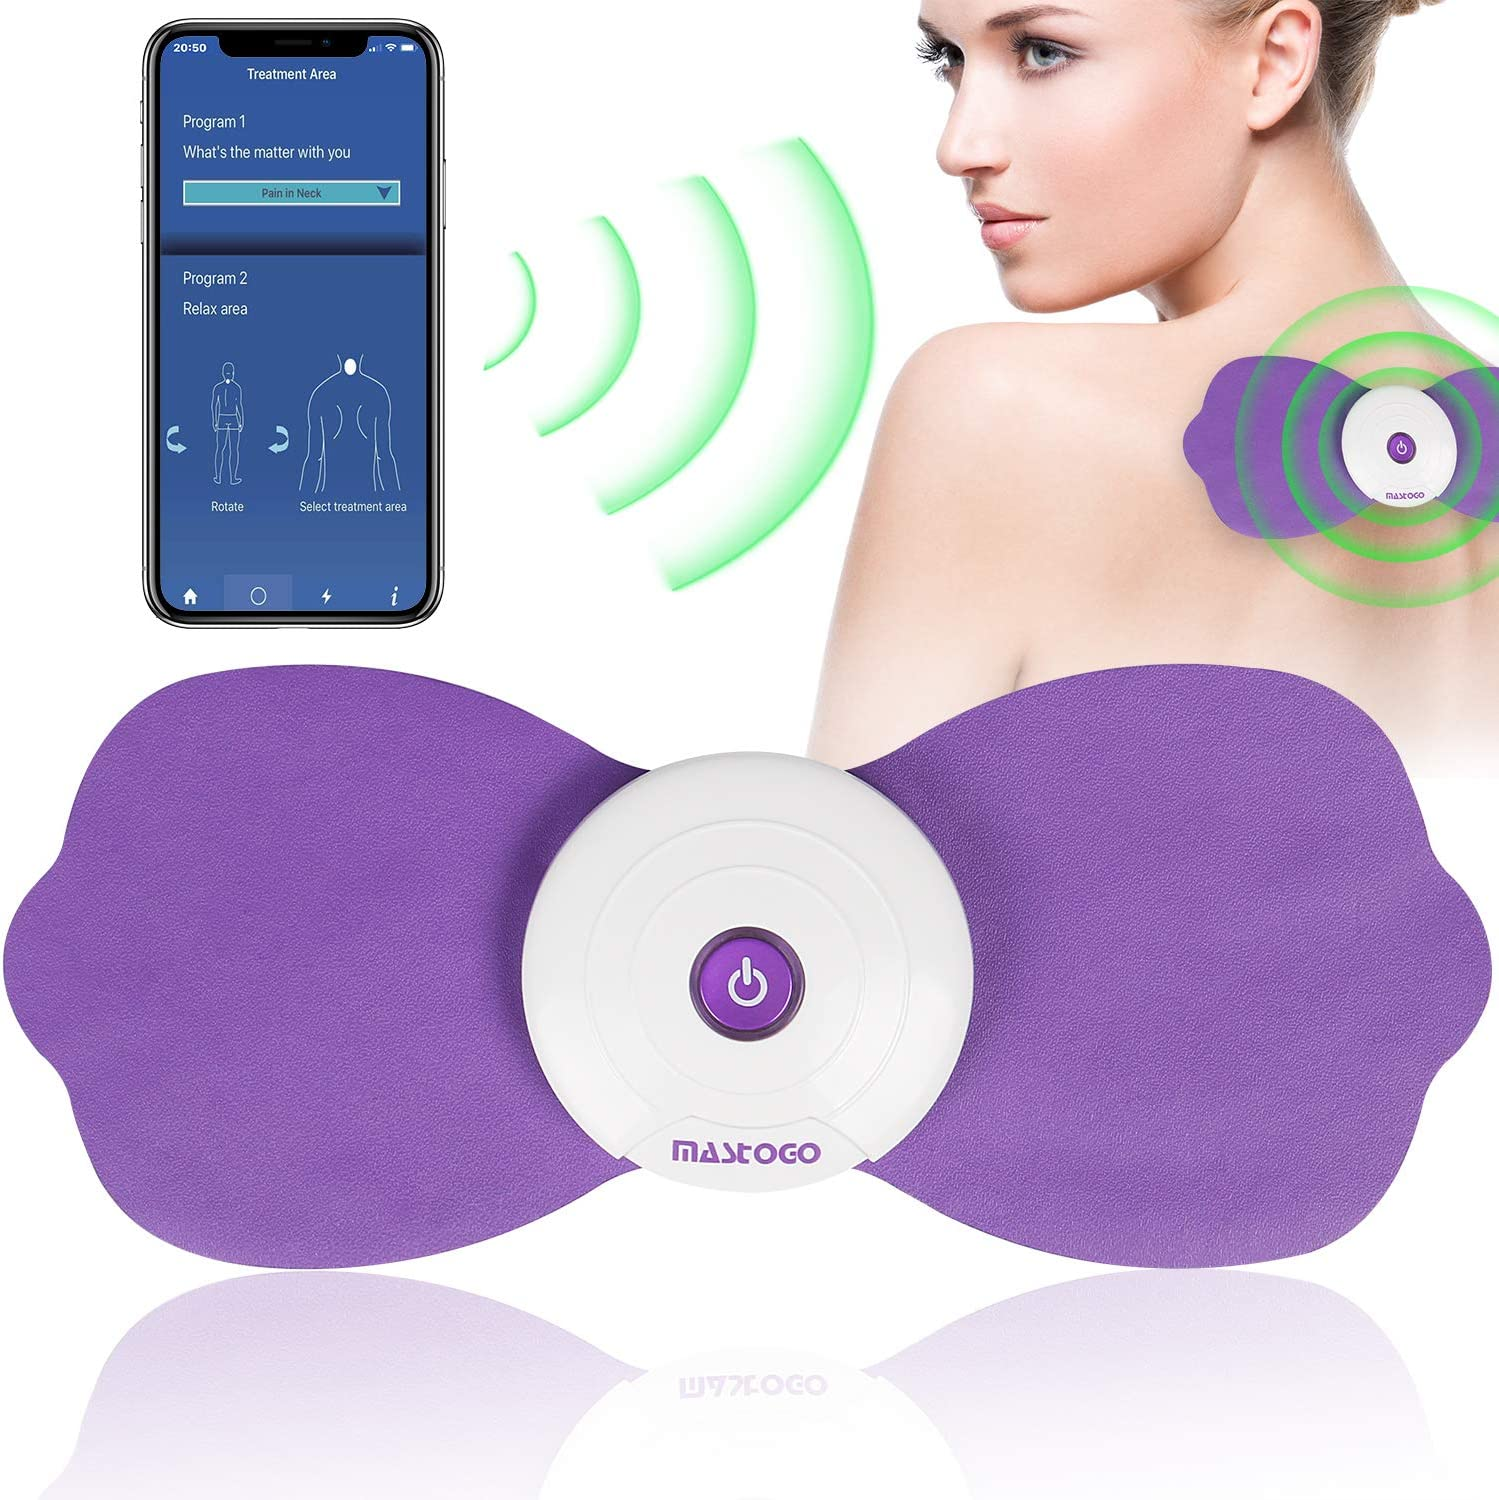 Wireless Back Pain Relief Massager TENS Unit - Bluetooth Electric APP Controlled EMS Muscle Stimulator Machine for Back Shoulder Leg Neck Pain Relief